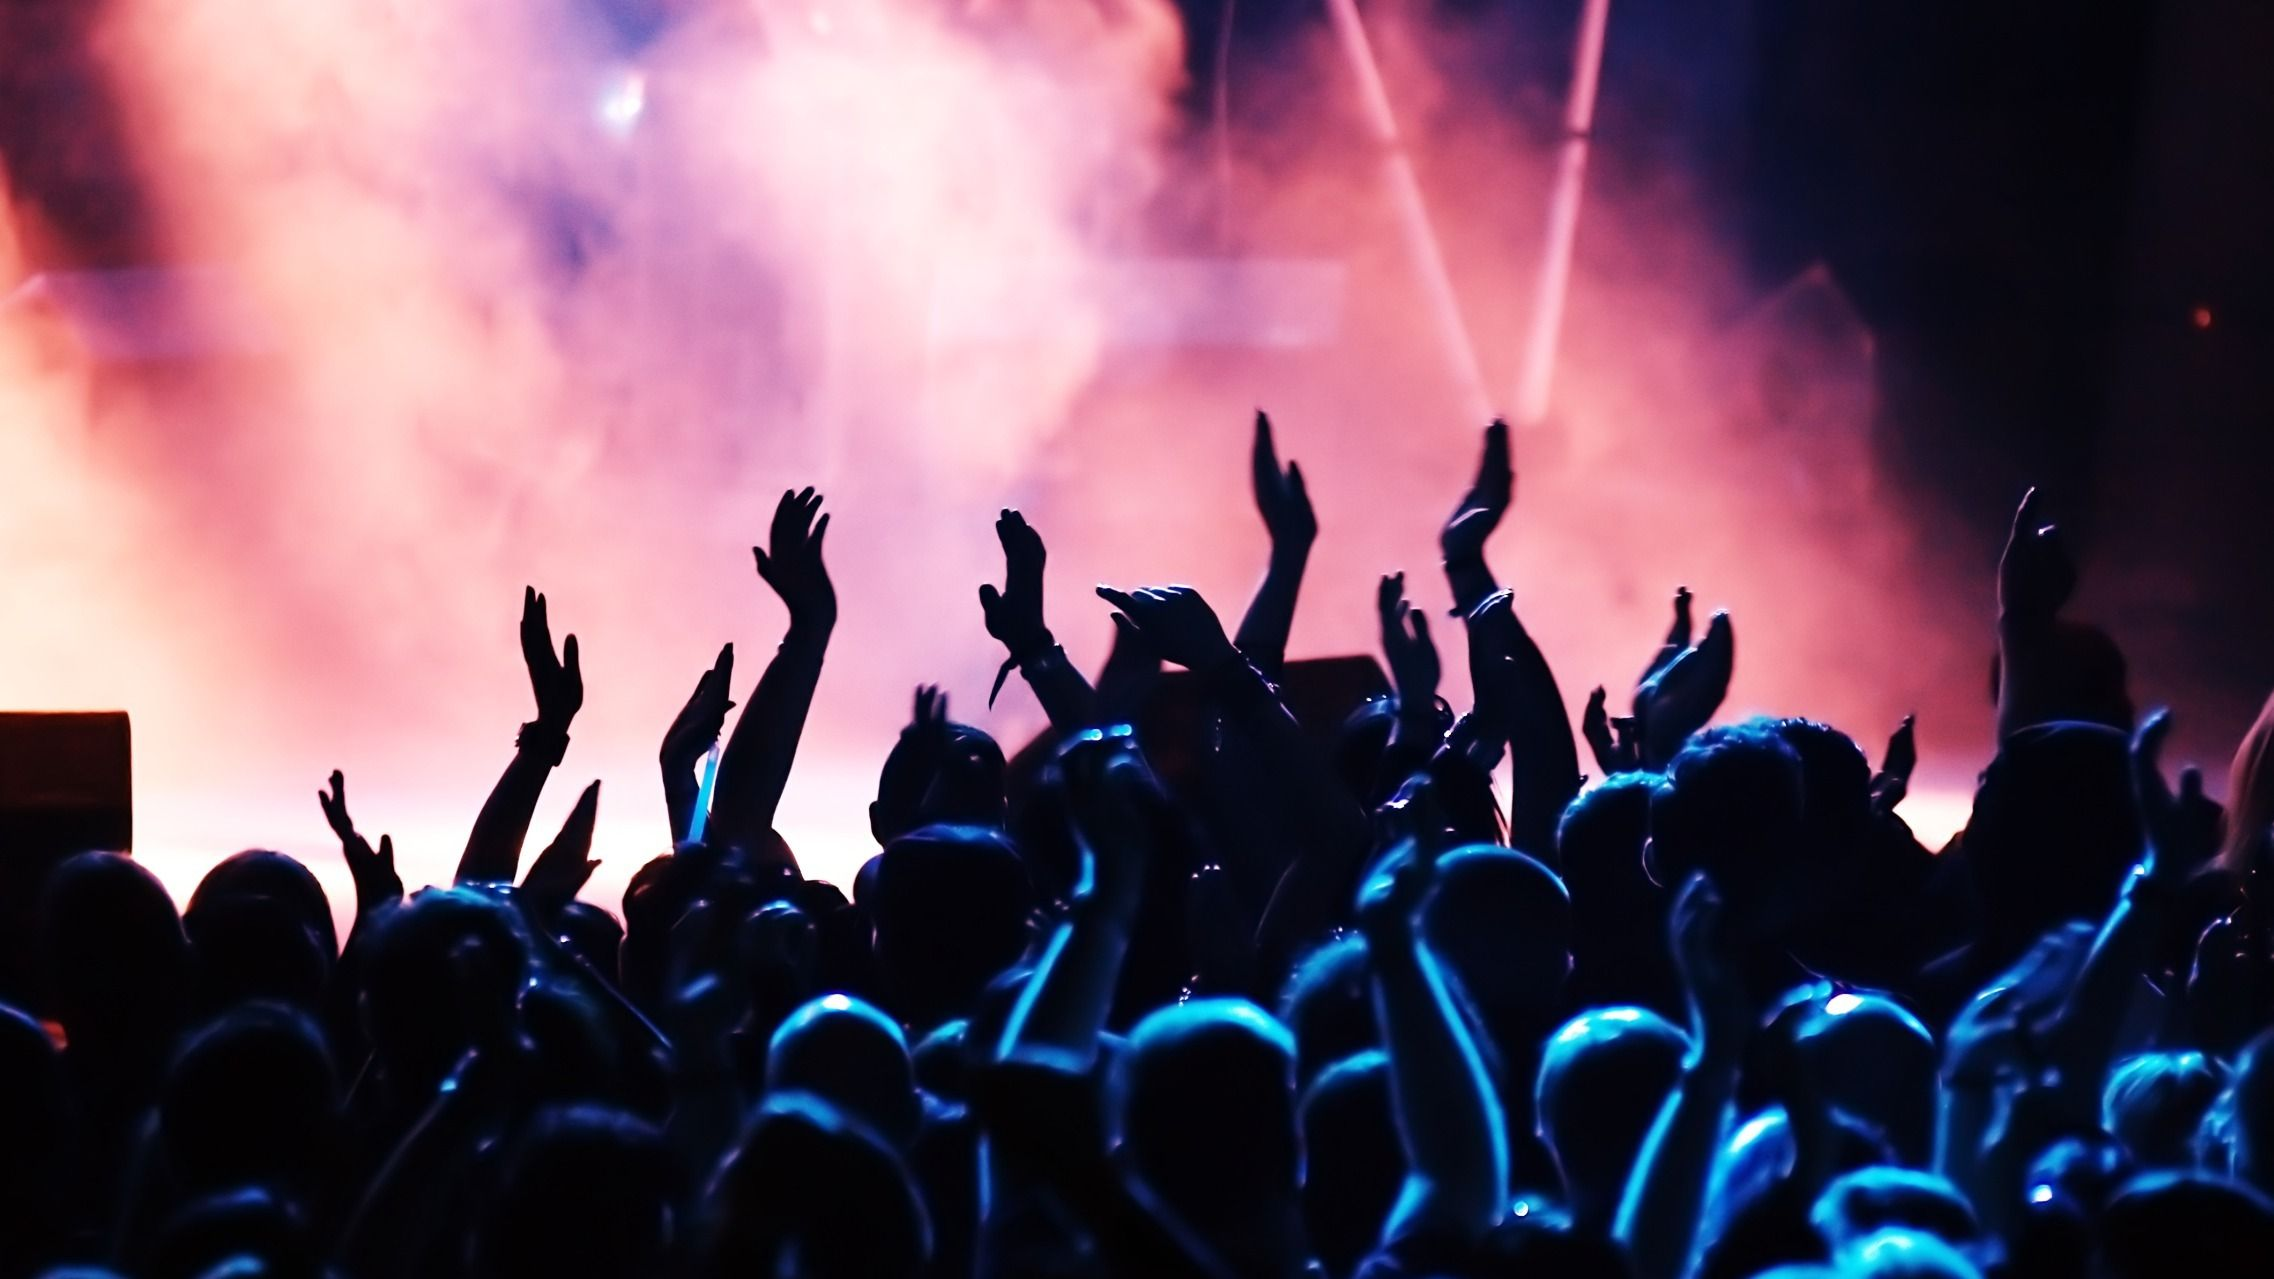 Young Adult Live Music Fans